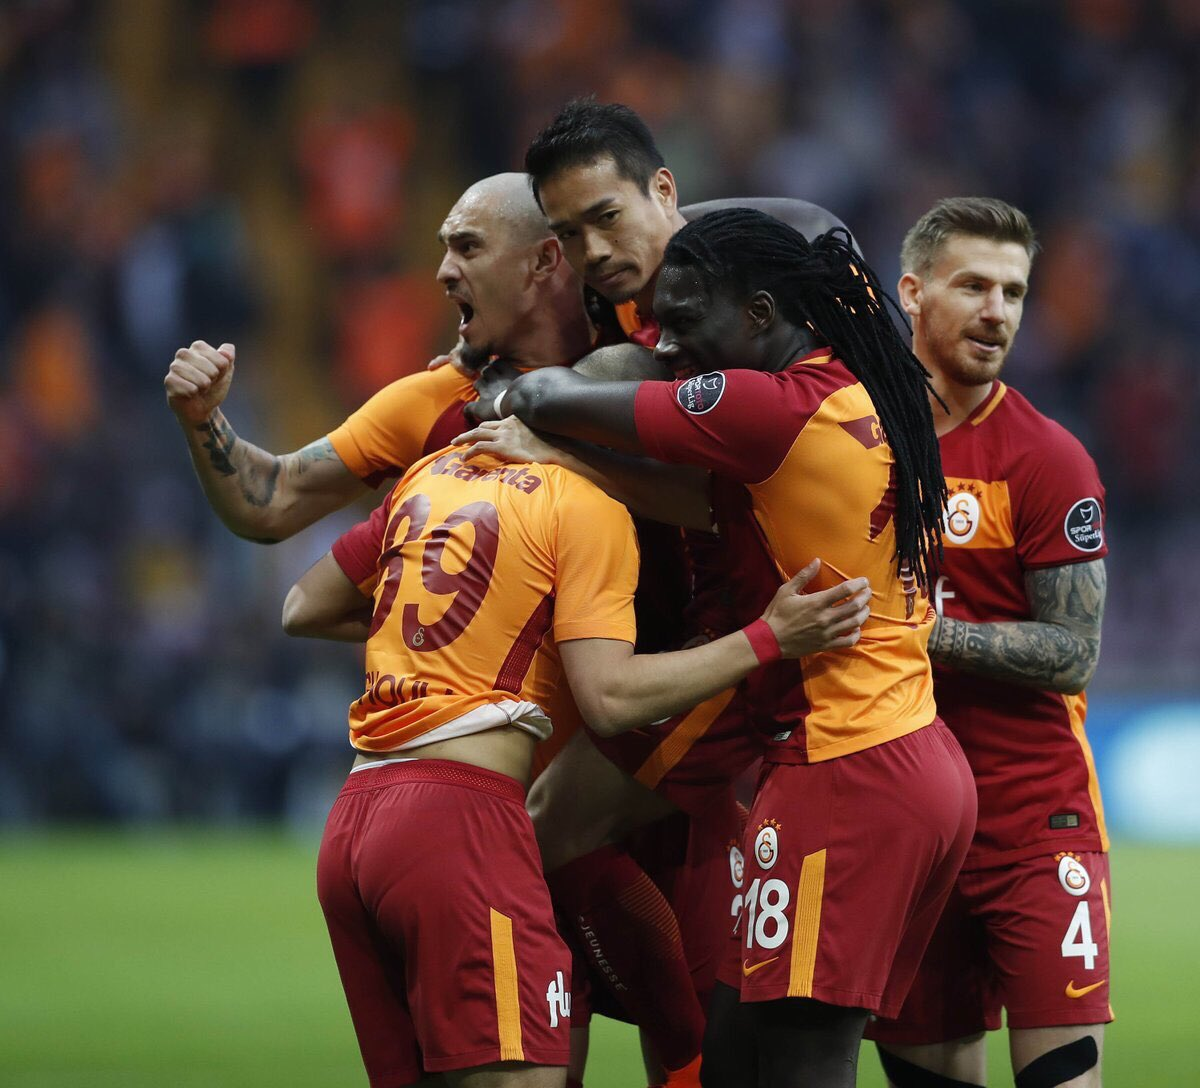 We are galatasaray 💪💪🔥🔥🦁